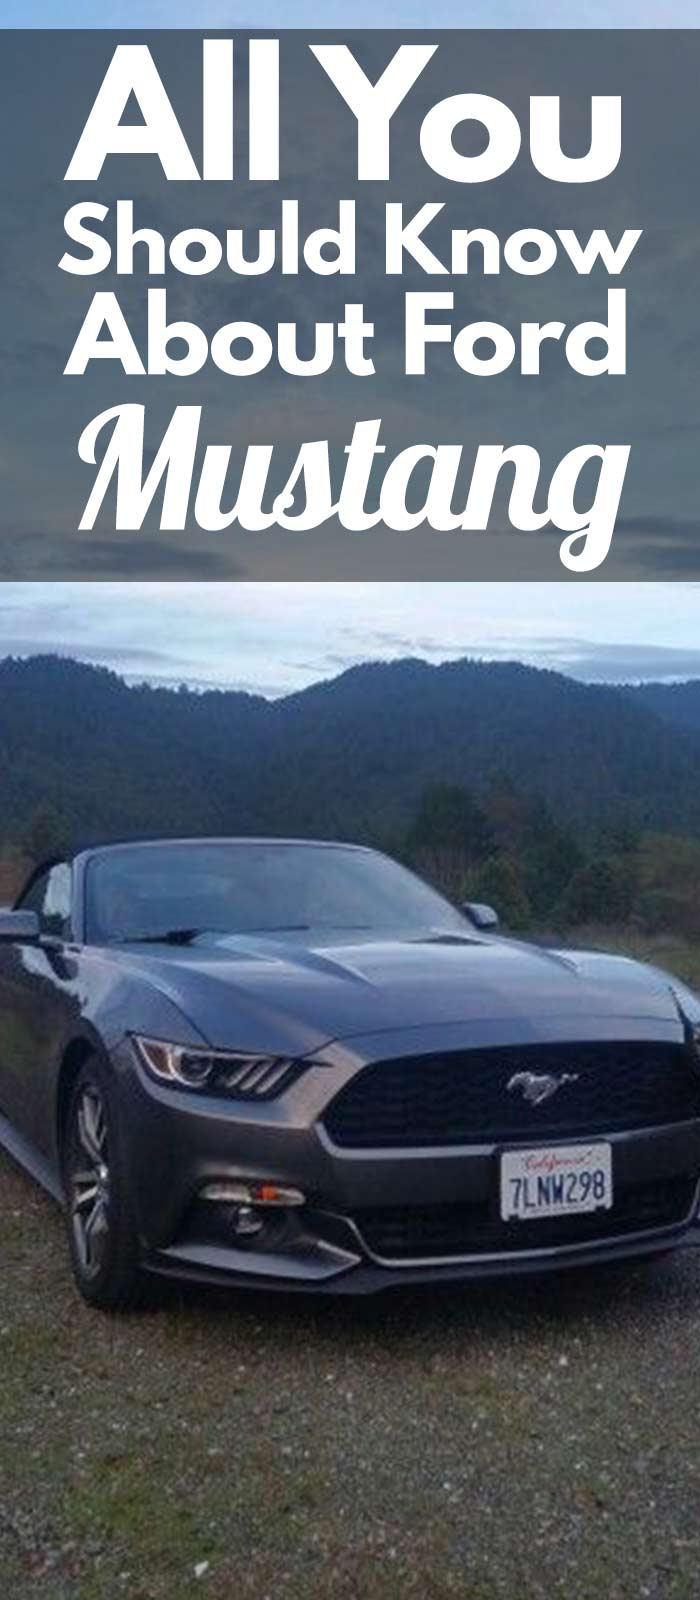 All You Should Know About Ford MUSTANG!